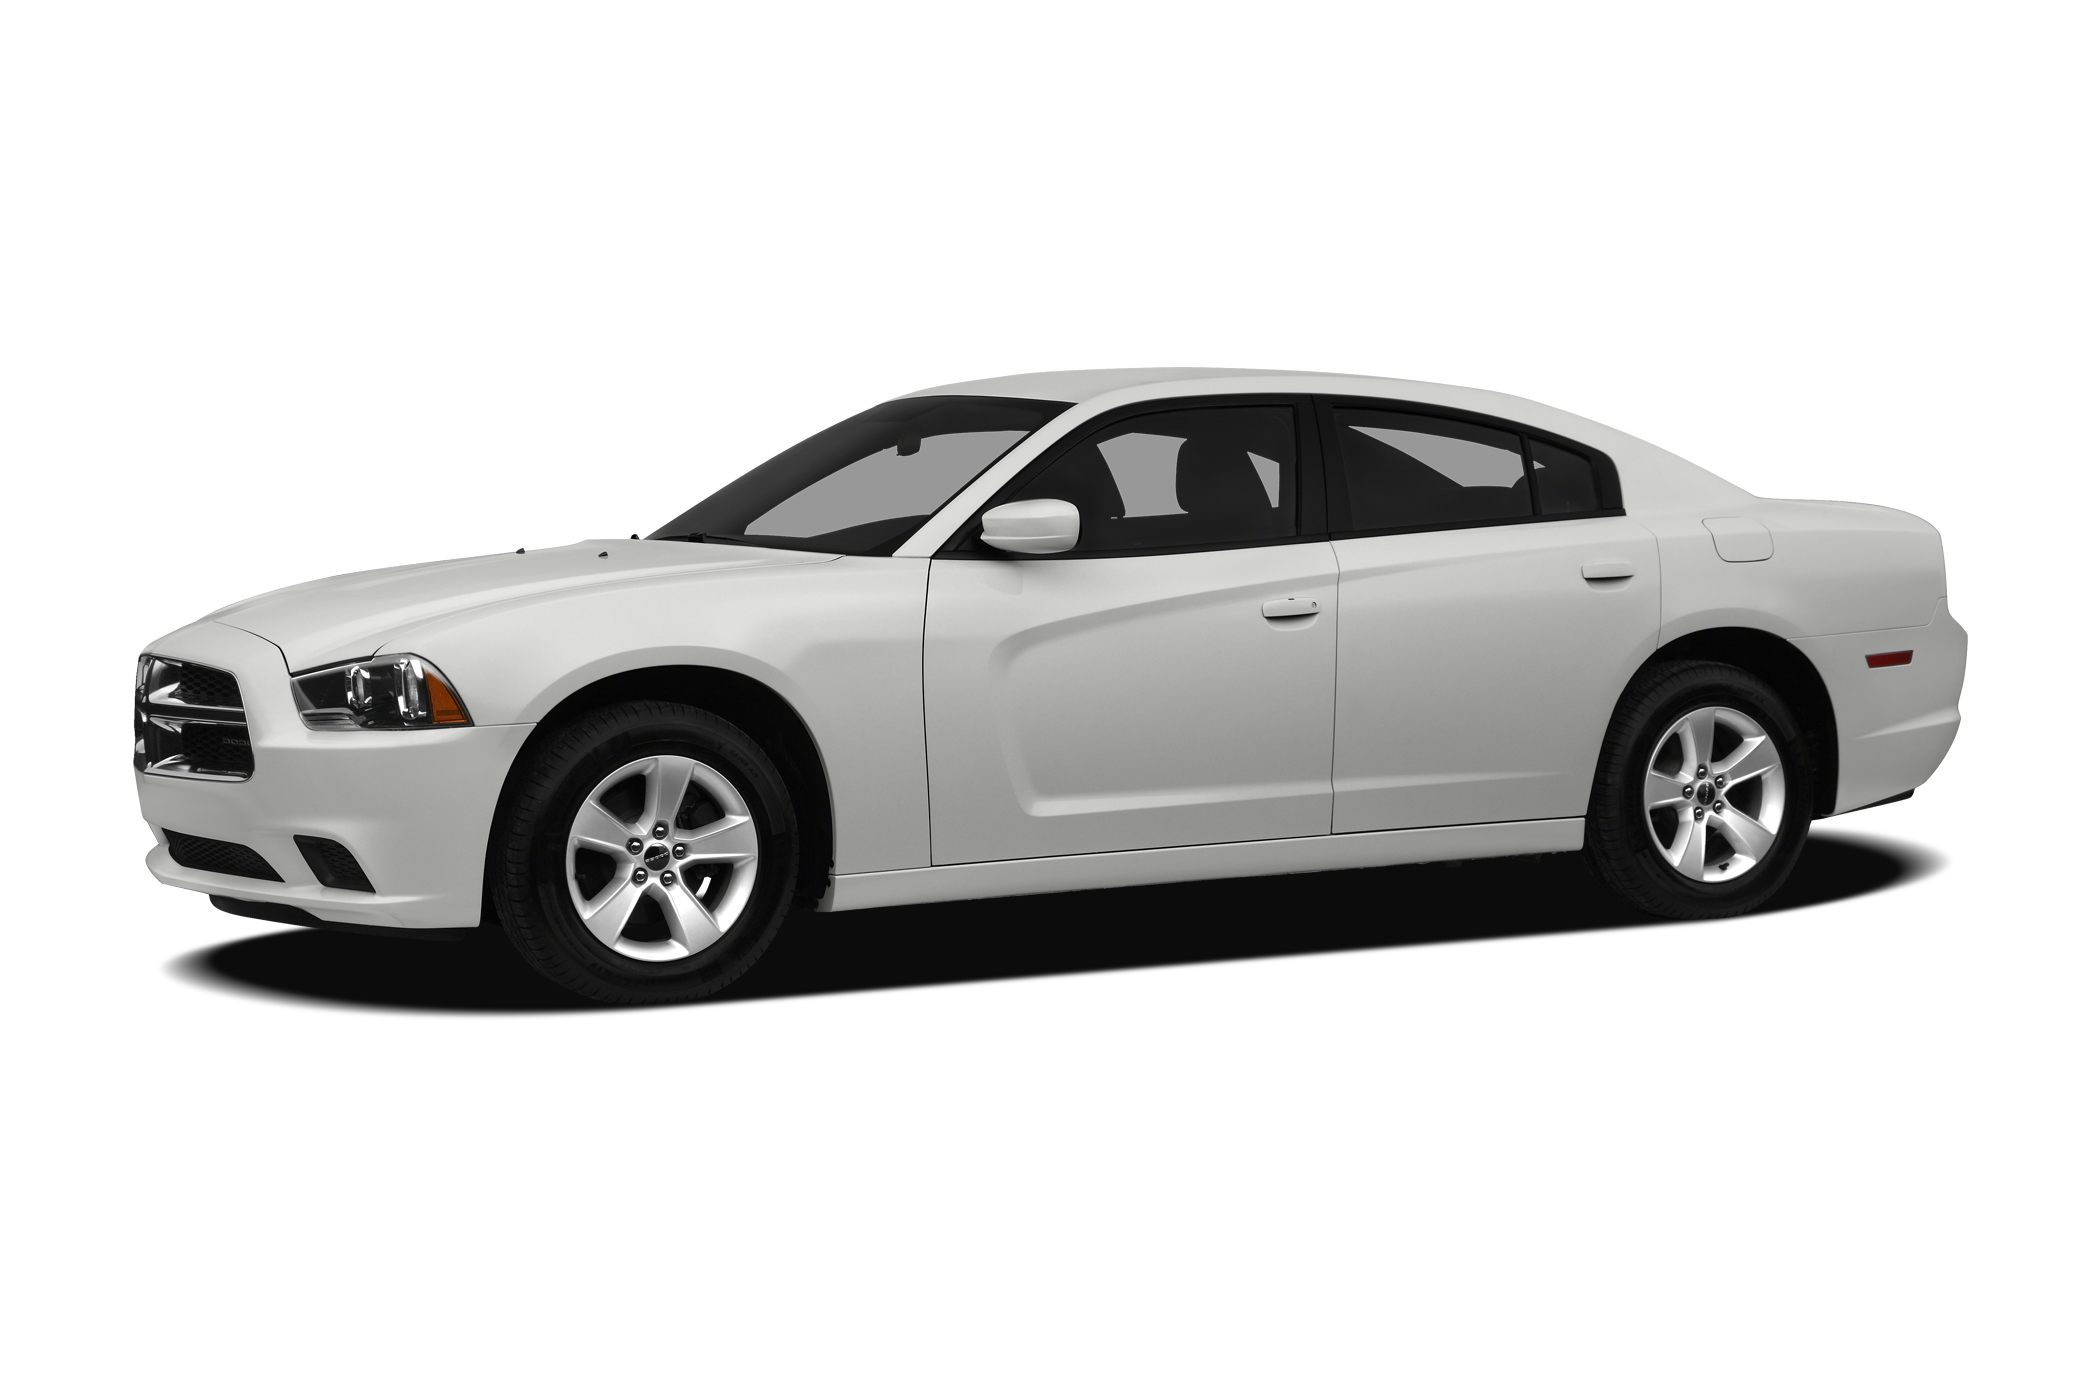 2012 Dodge Charger SE Sedan for sale in Batesville for $18,995 with 57,340 miles